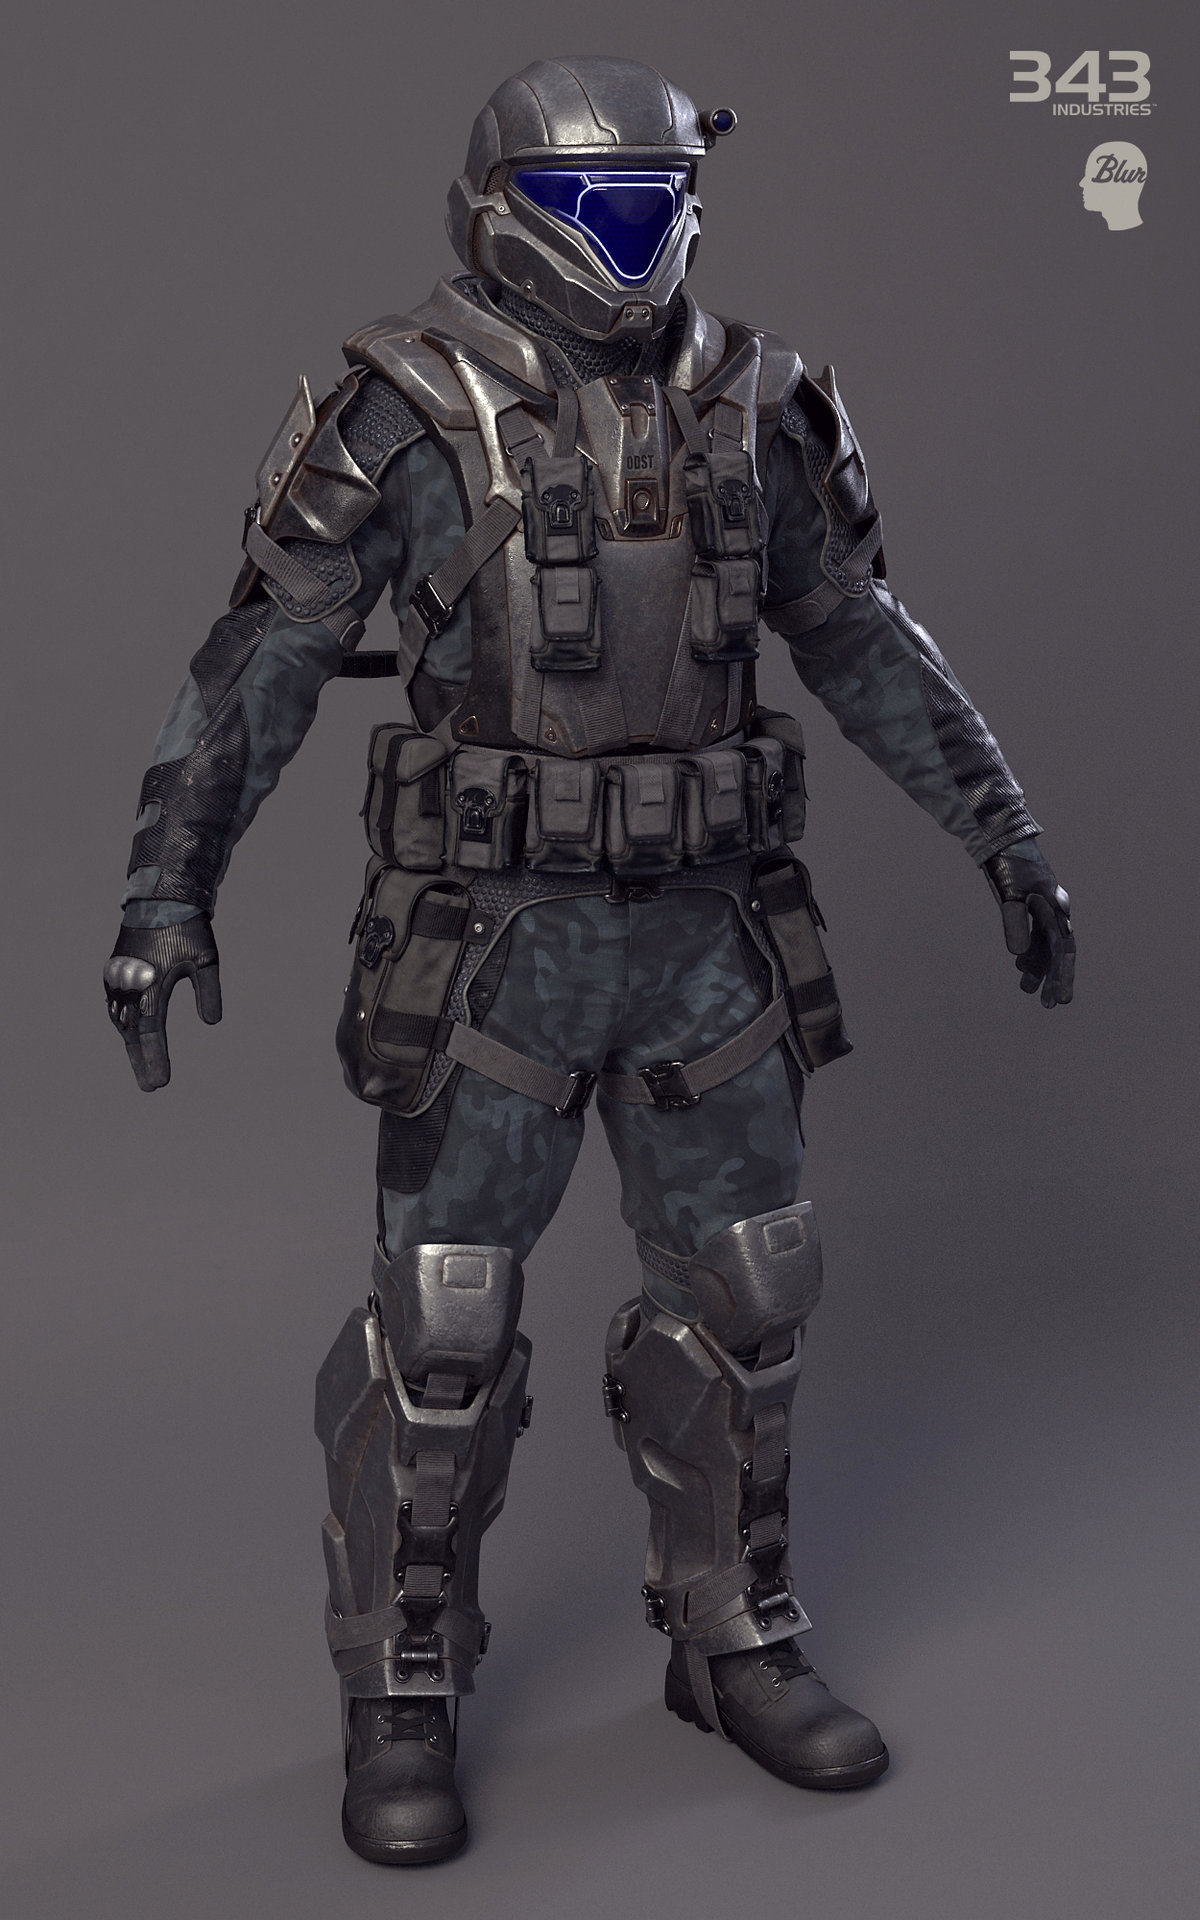 Image h2a cinematicrender halo nation wikia - Halo odst images ...